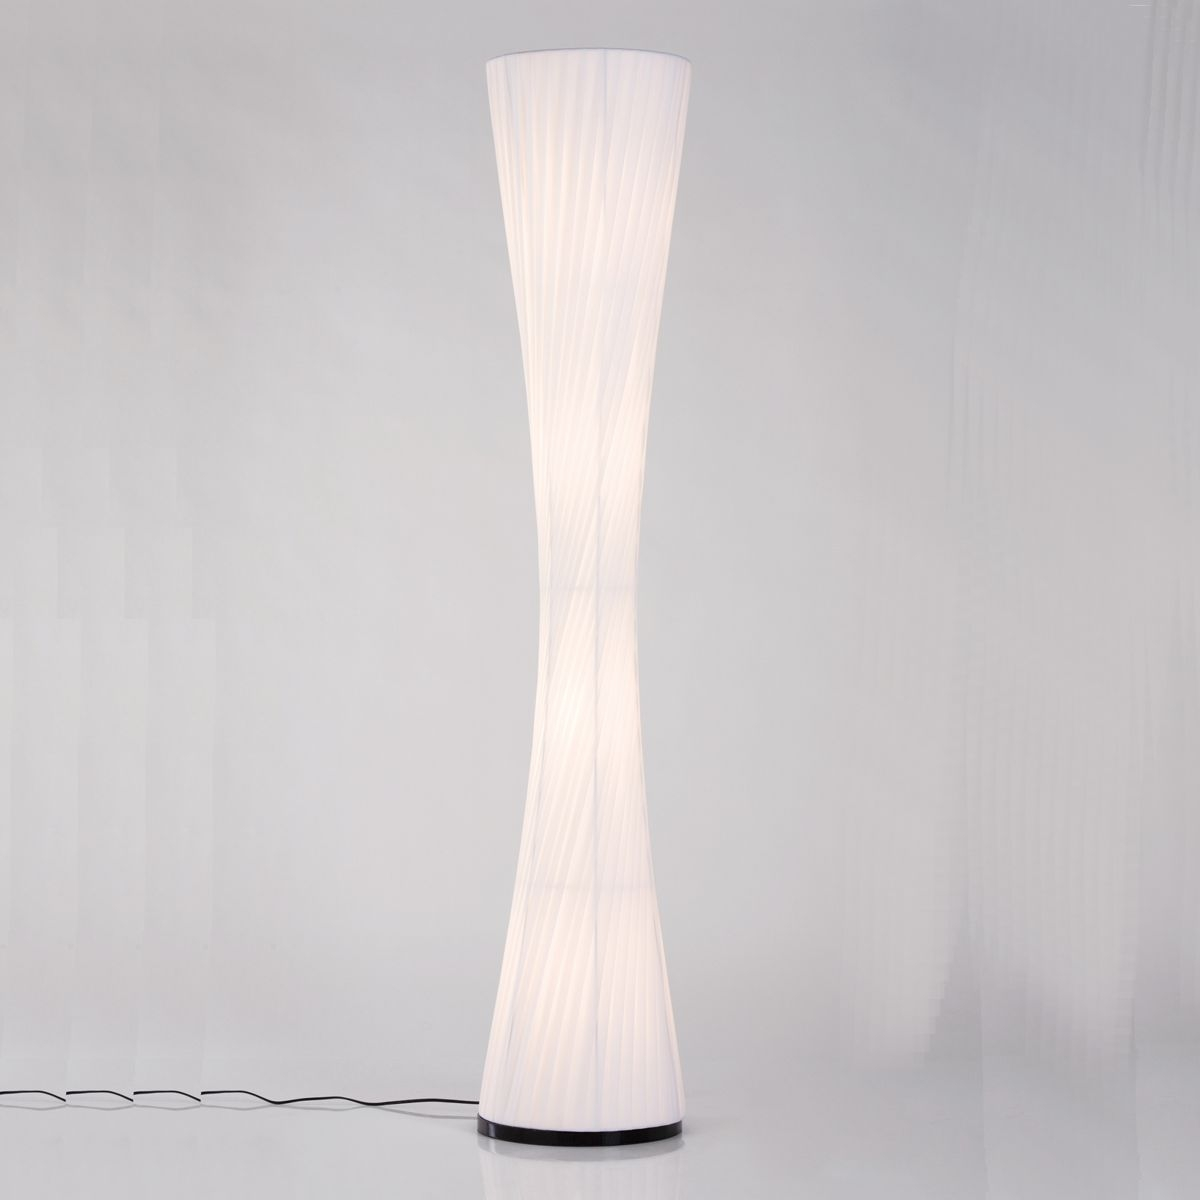 Contemporary Standing Lamps Intended For Contemporary Floor Standing Mirrors (Image 10 of 15)